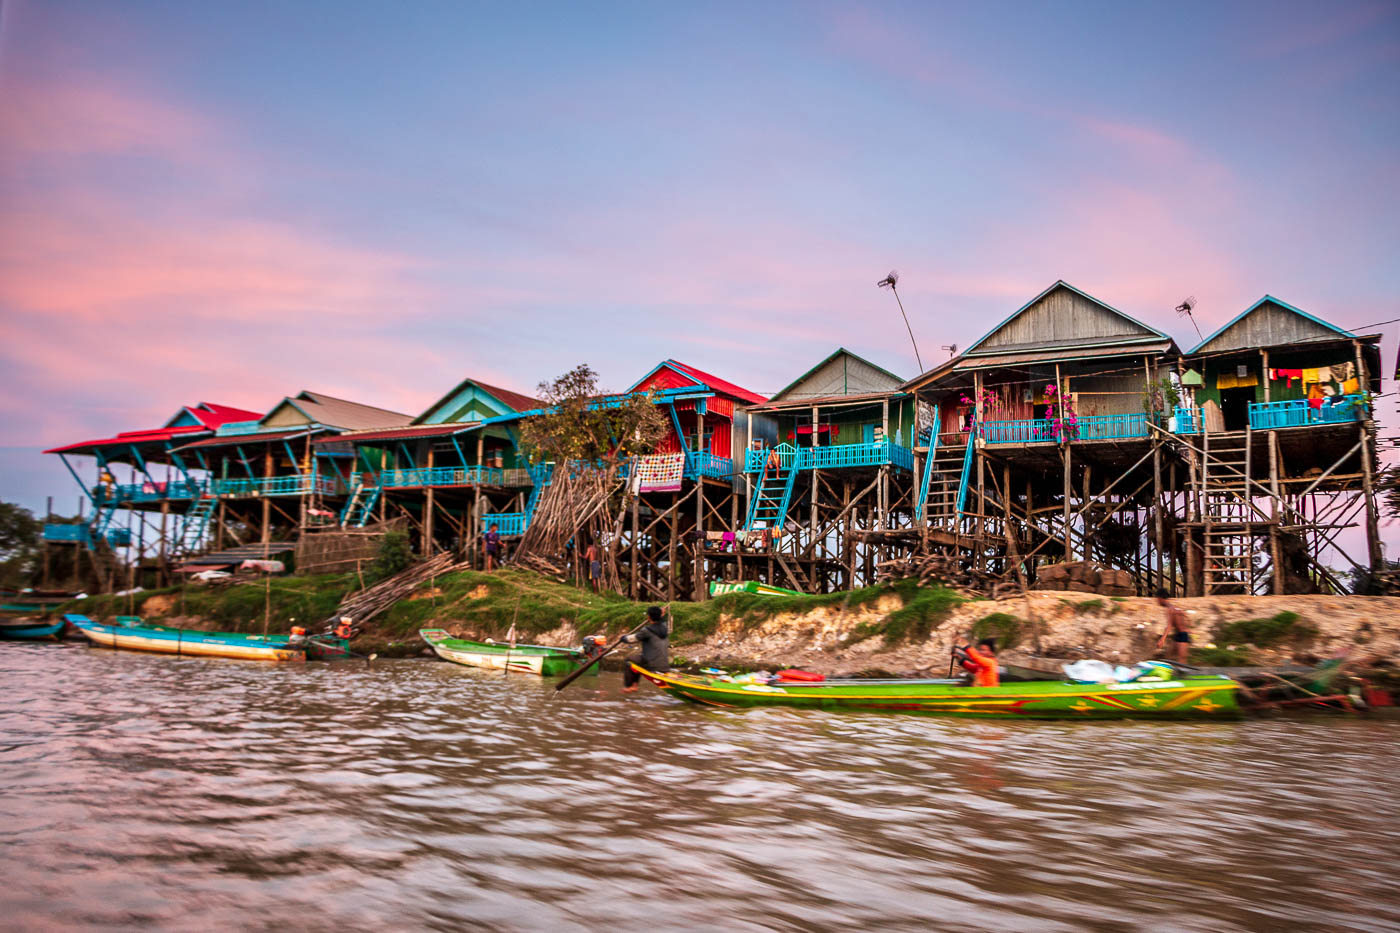 Floating village in Siem Reap, Cambodia – How to visit Kampong Phluk